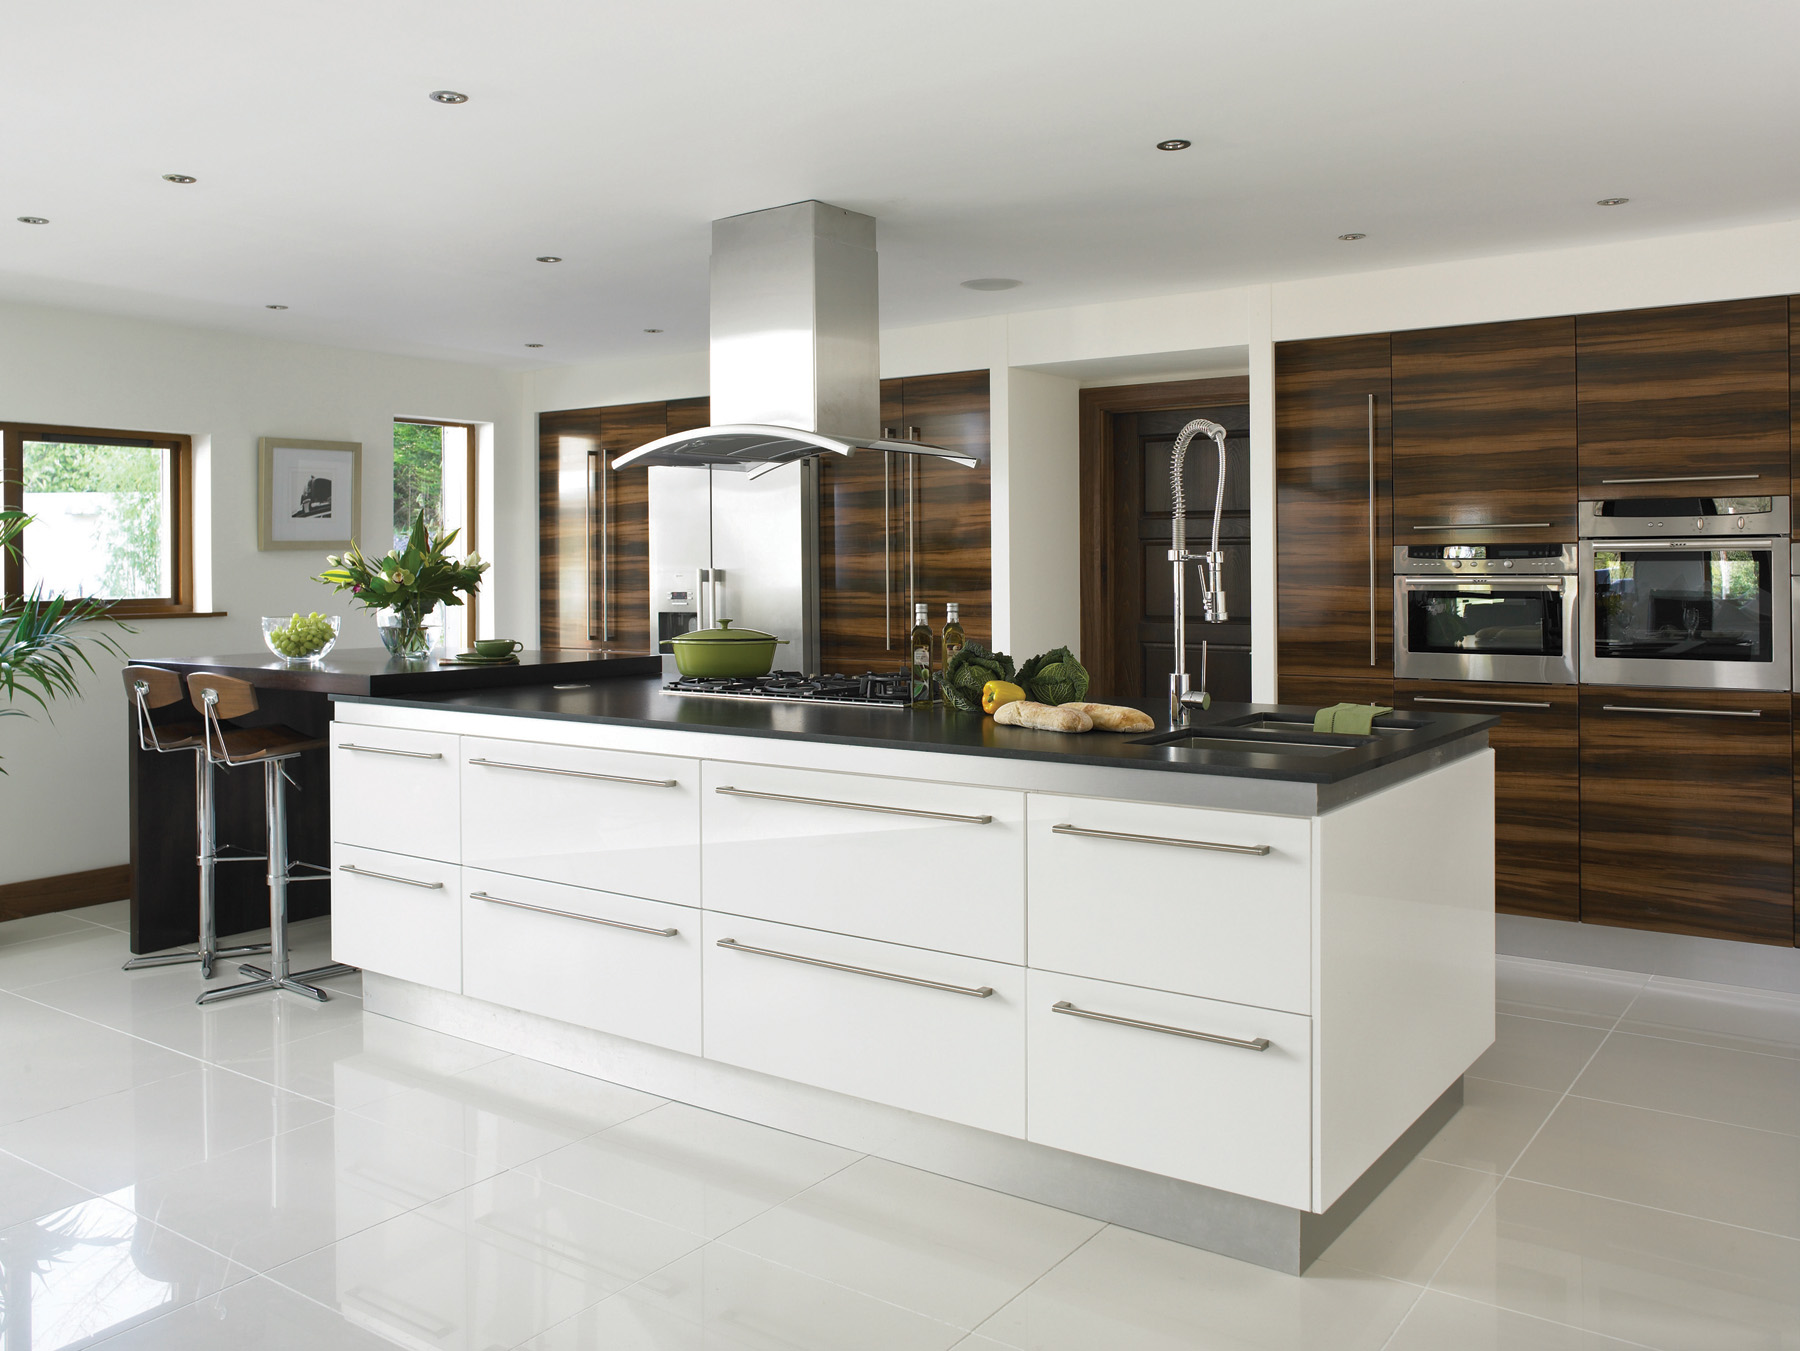 Gloss white kitchens hallmark kitchen designs Kitchen designs with islands modern